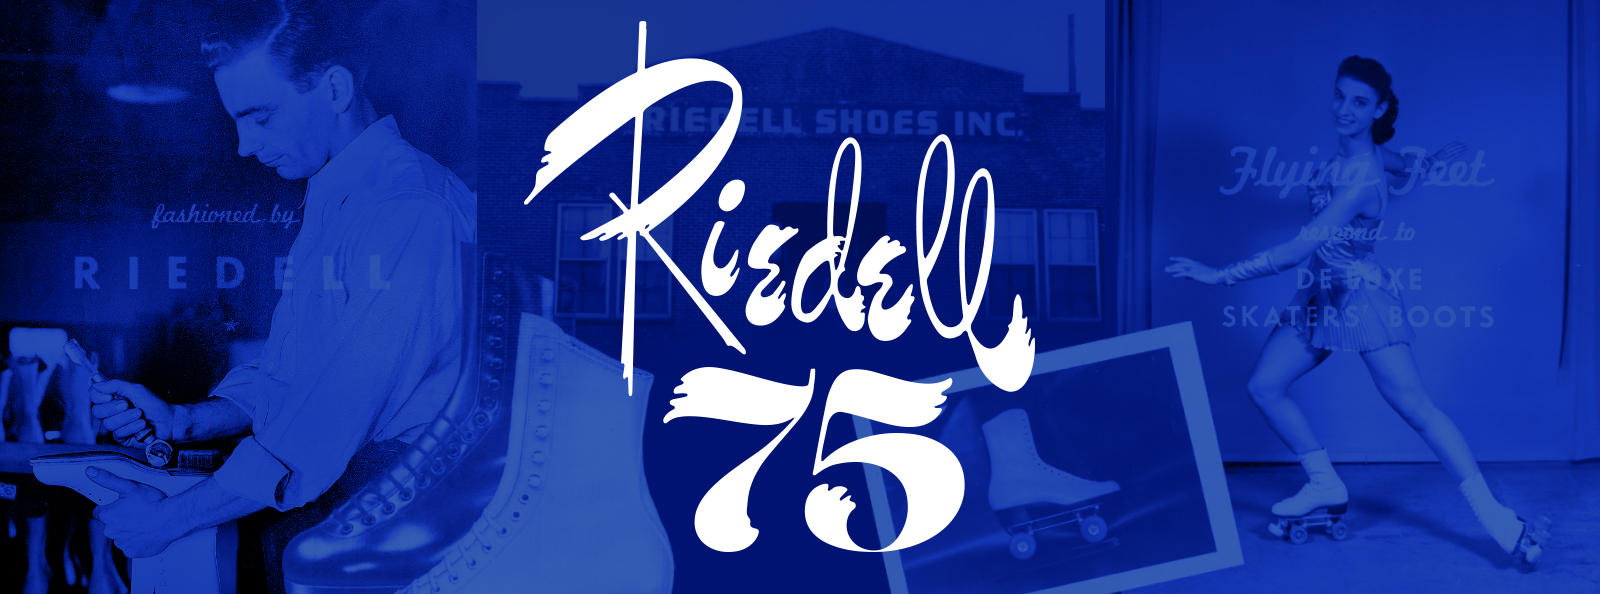 Riedell Skates is proud to be celebrating 75 years of making skates!